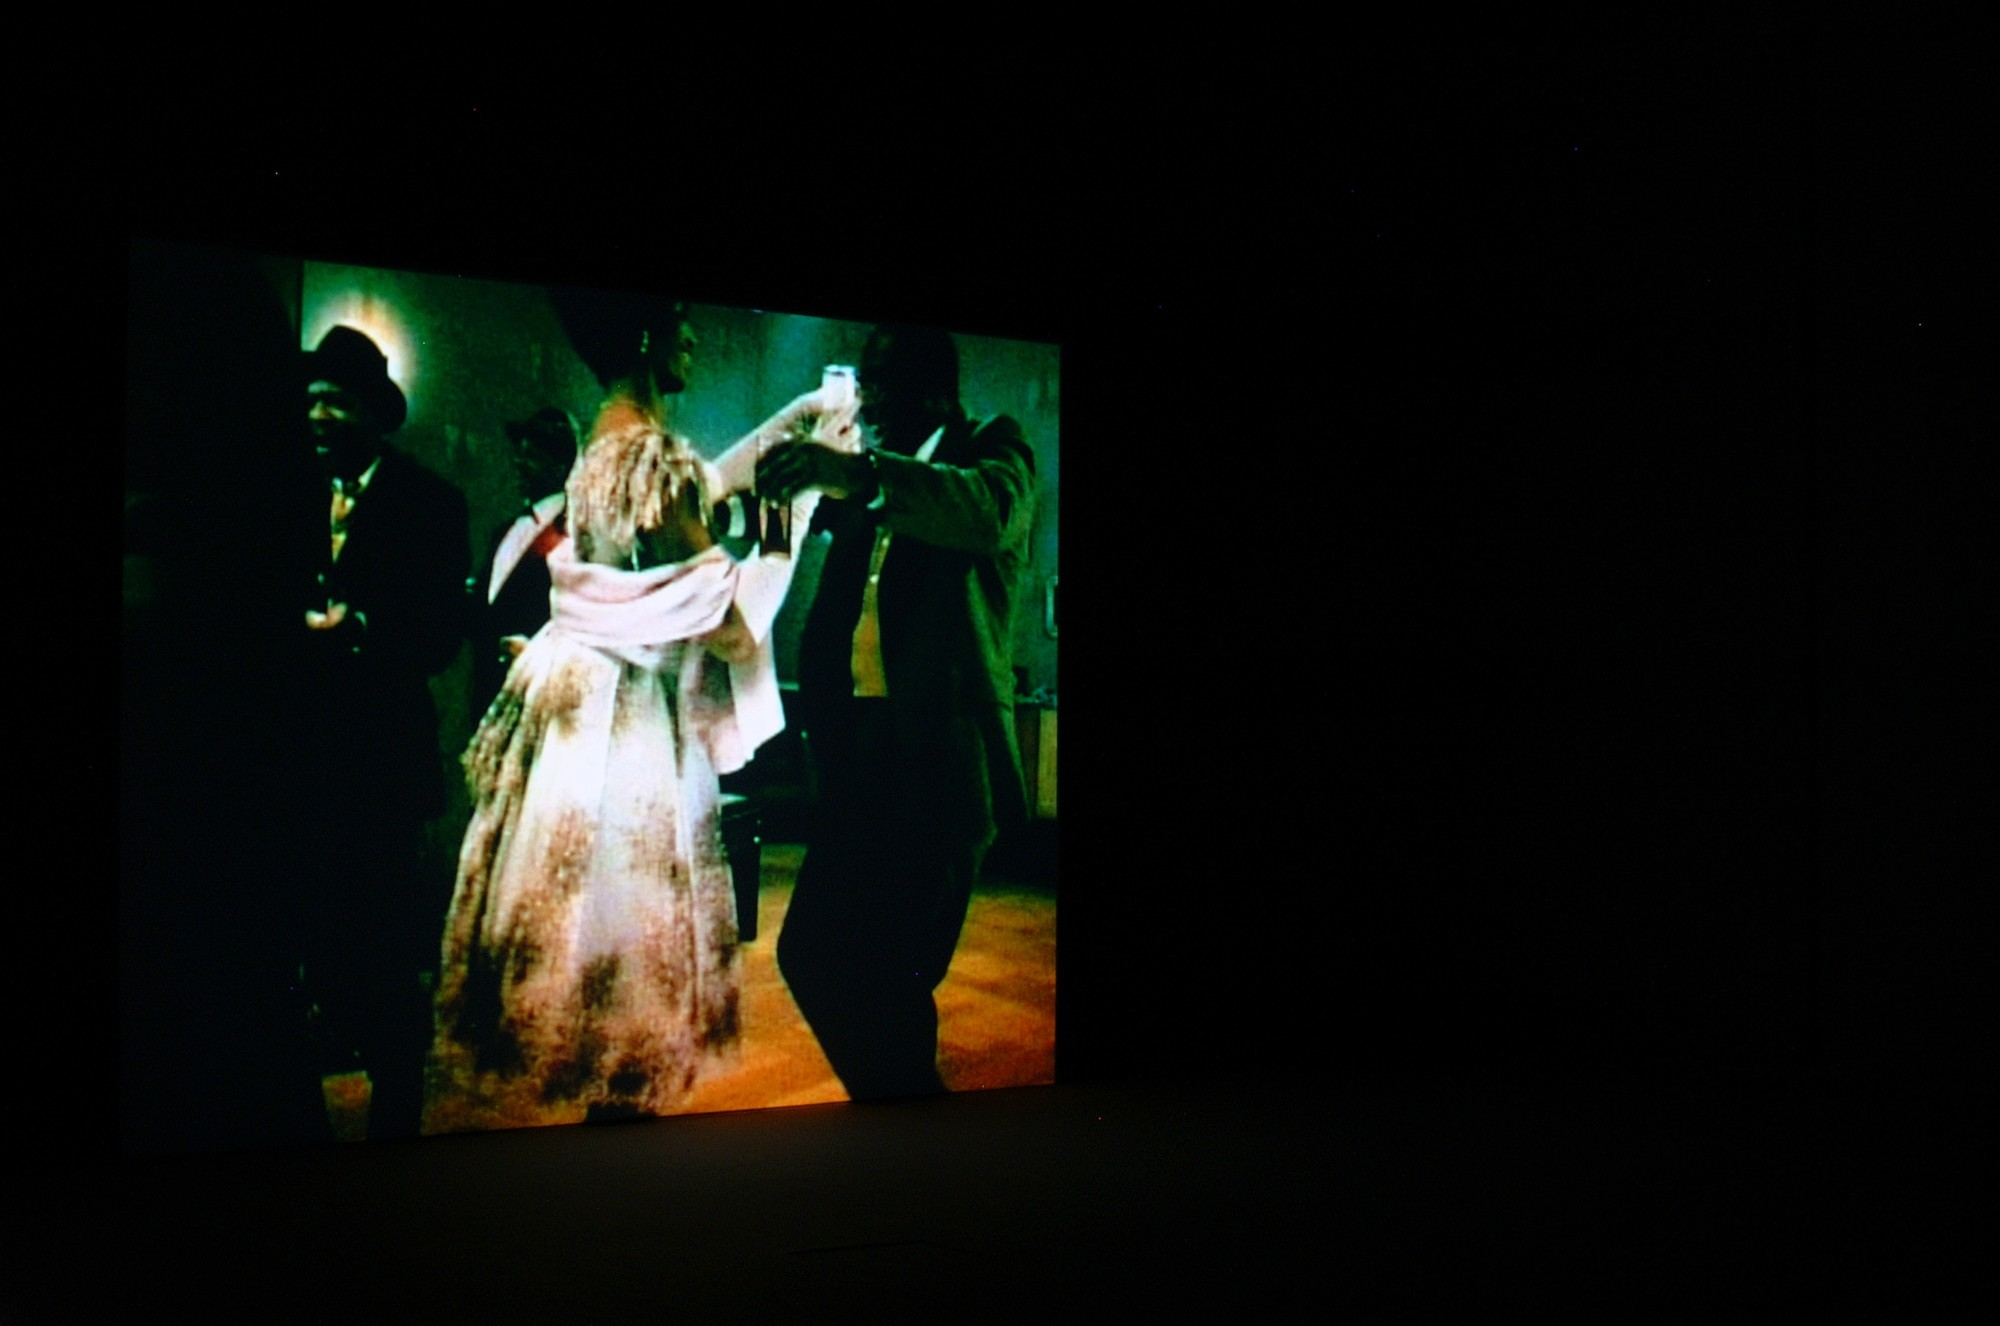 Black Box. Edinburgh College of Art, 2003  20' 29'', 16mm film transferred to digital, colour, sound